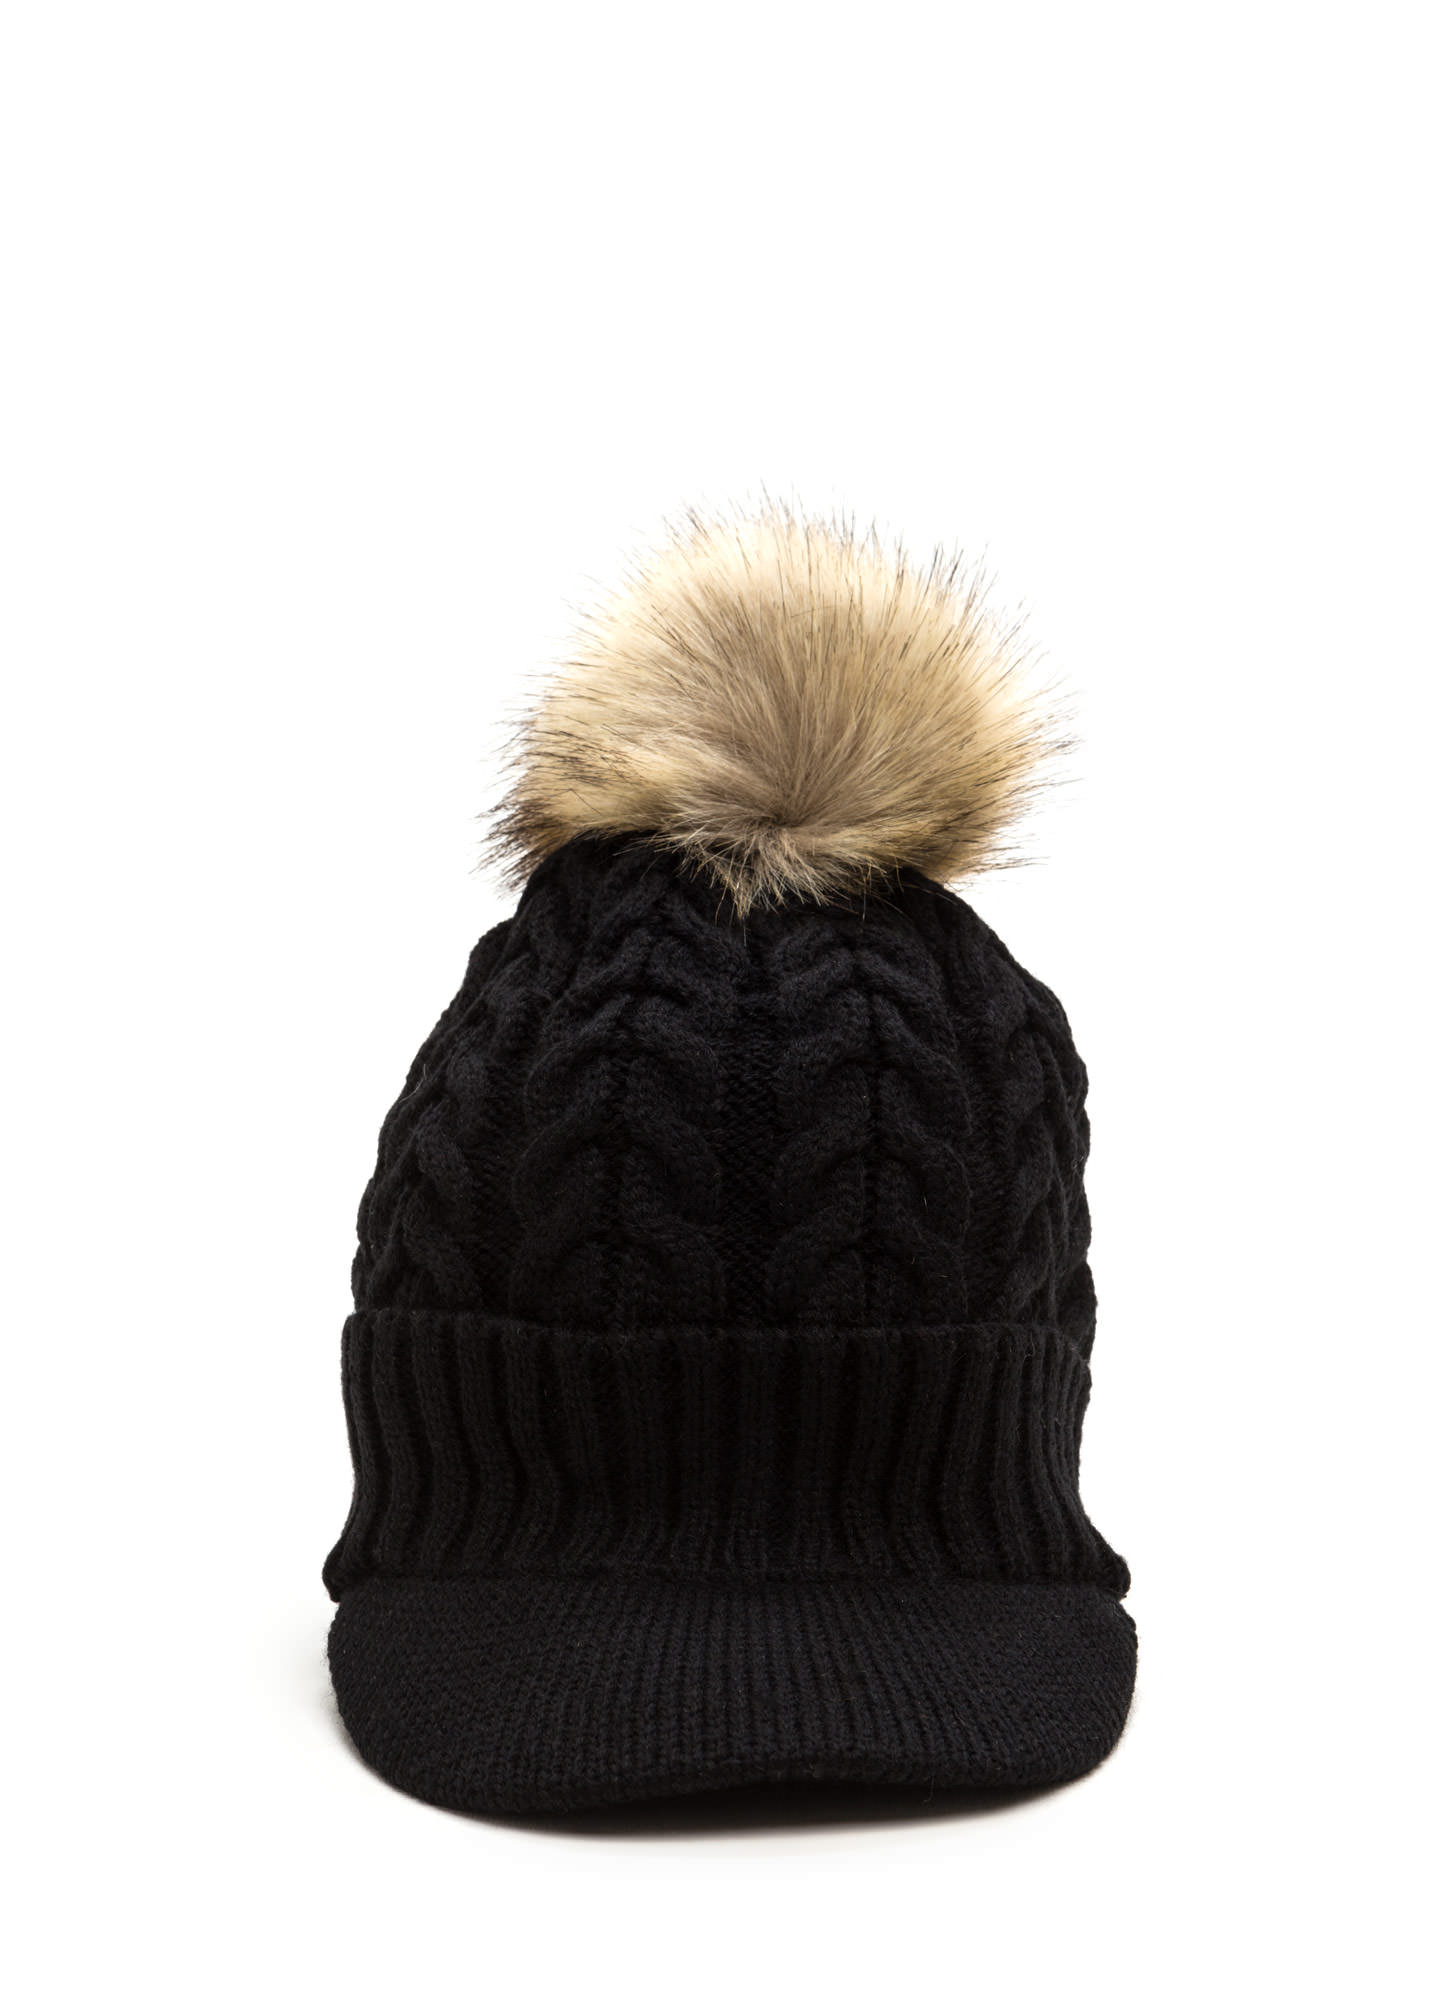 Fur-Ever Knit Pom-Pom Beanie BLACK